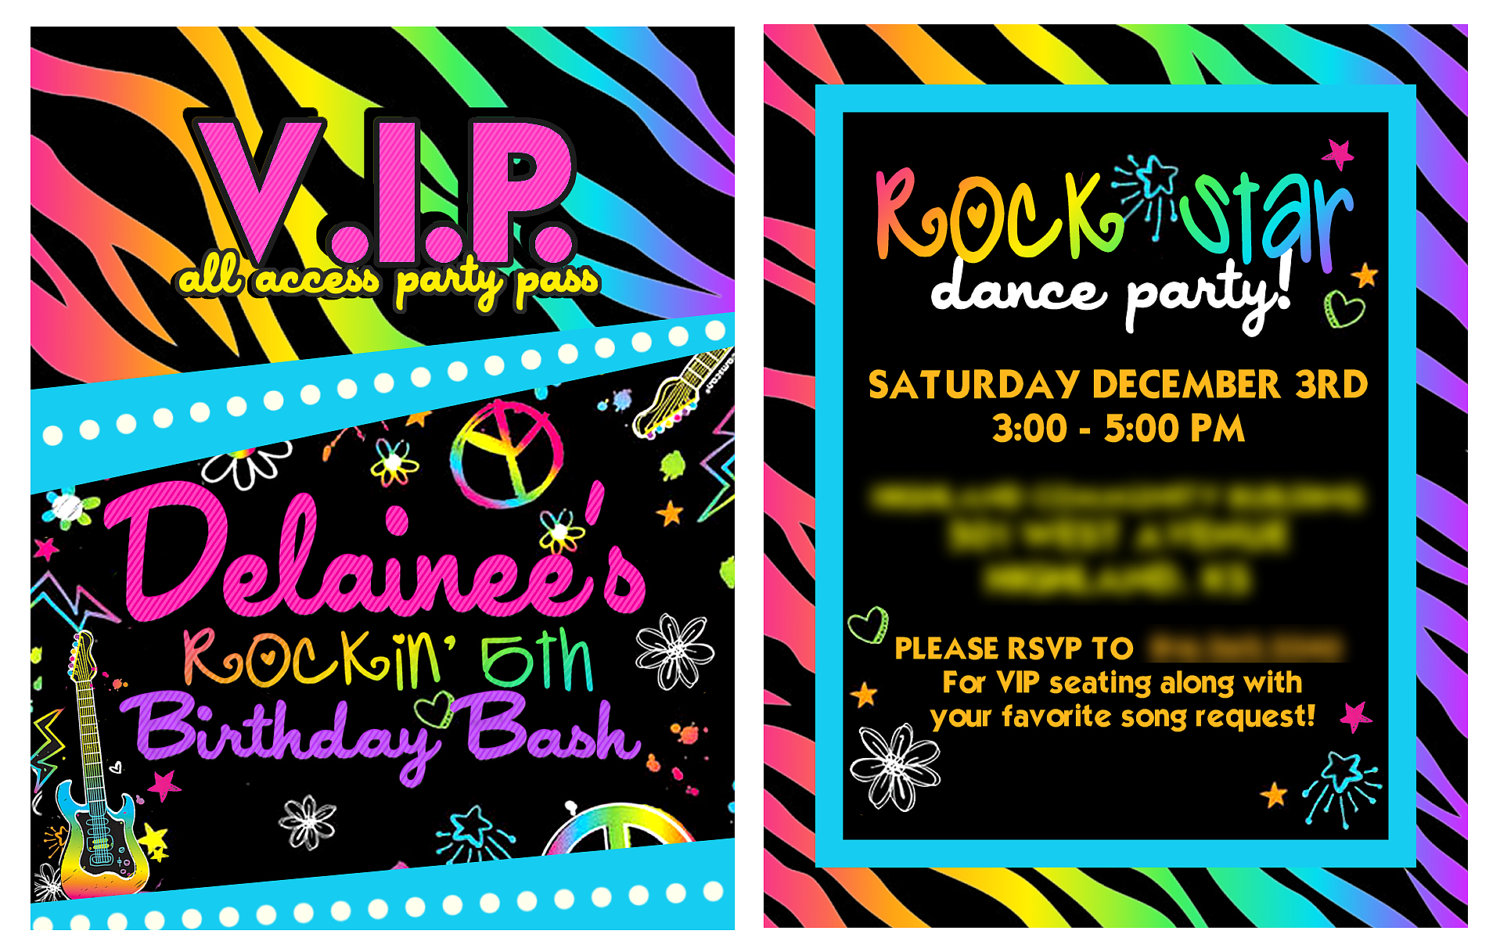 neon colored birthday invitations ; neon-birthday-party-invitations-And-then-ideas-Birthday-Invitations-unique-fesselnd-and-great-ideas-17